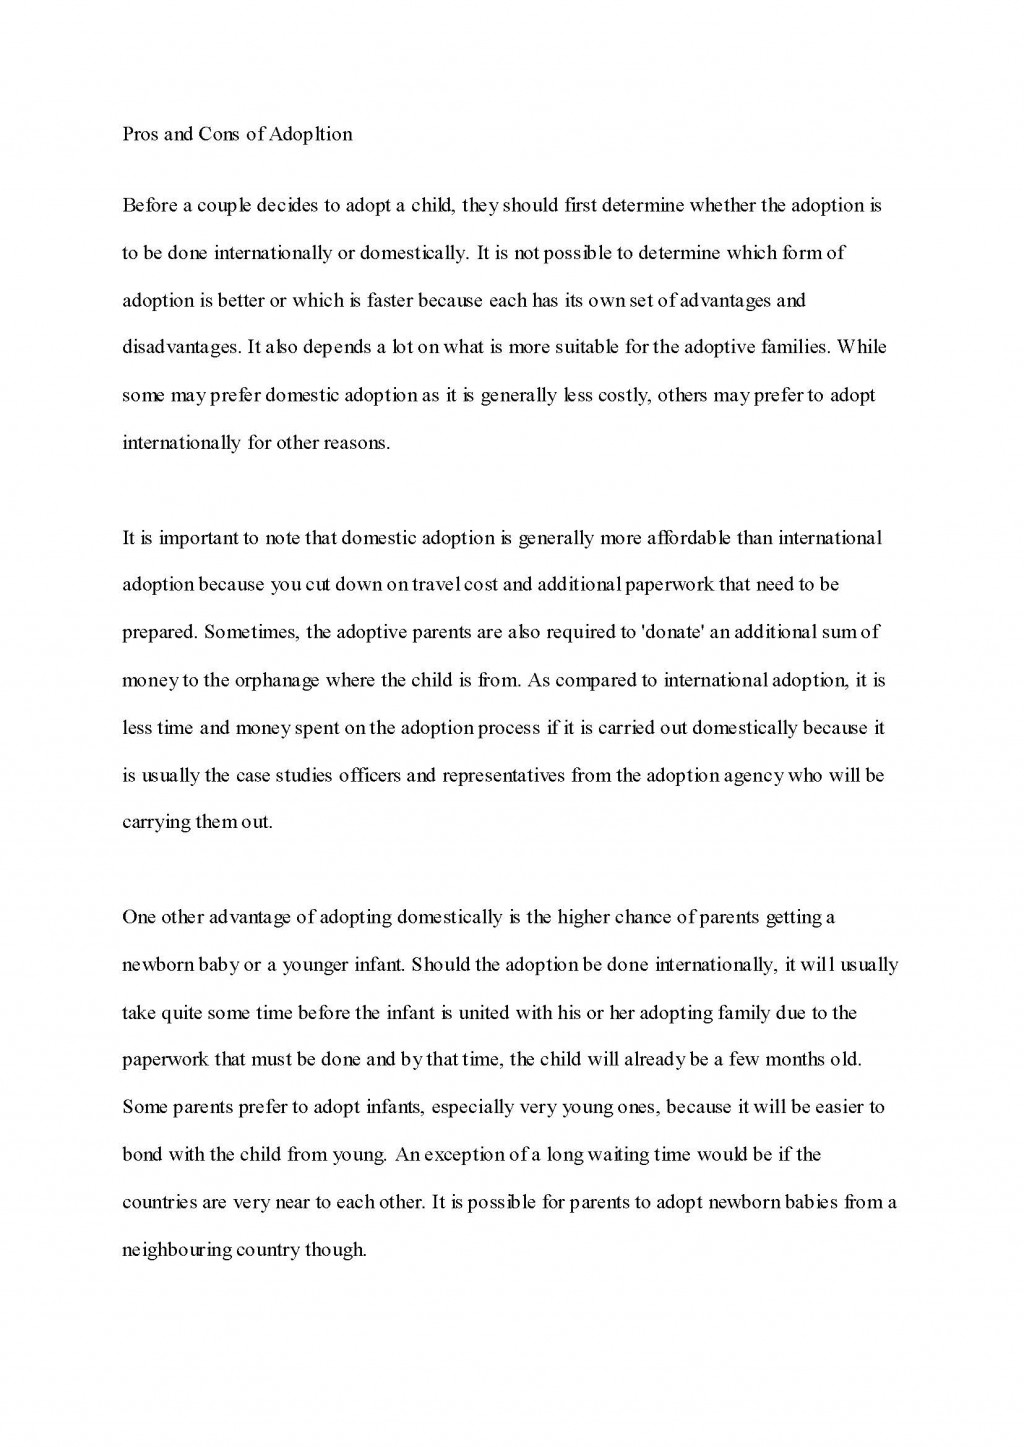 008 Adoption Essay Sample Do My Surprising Write Generator Free Uk Reviews Now Large